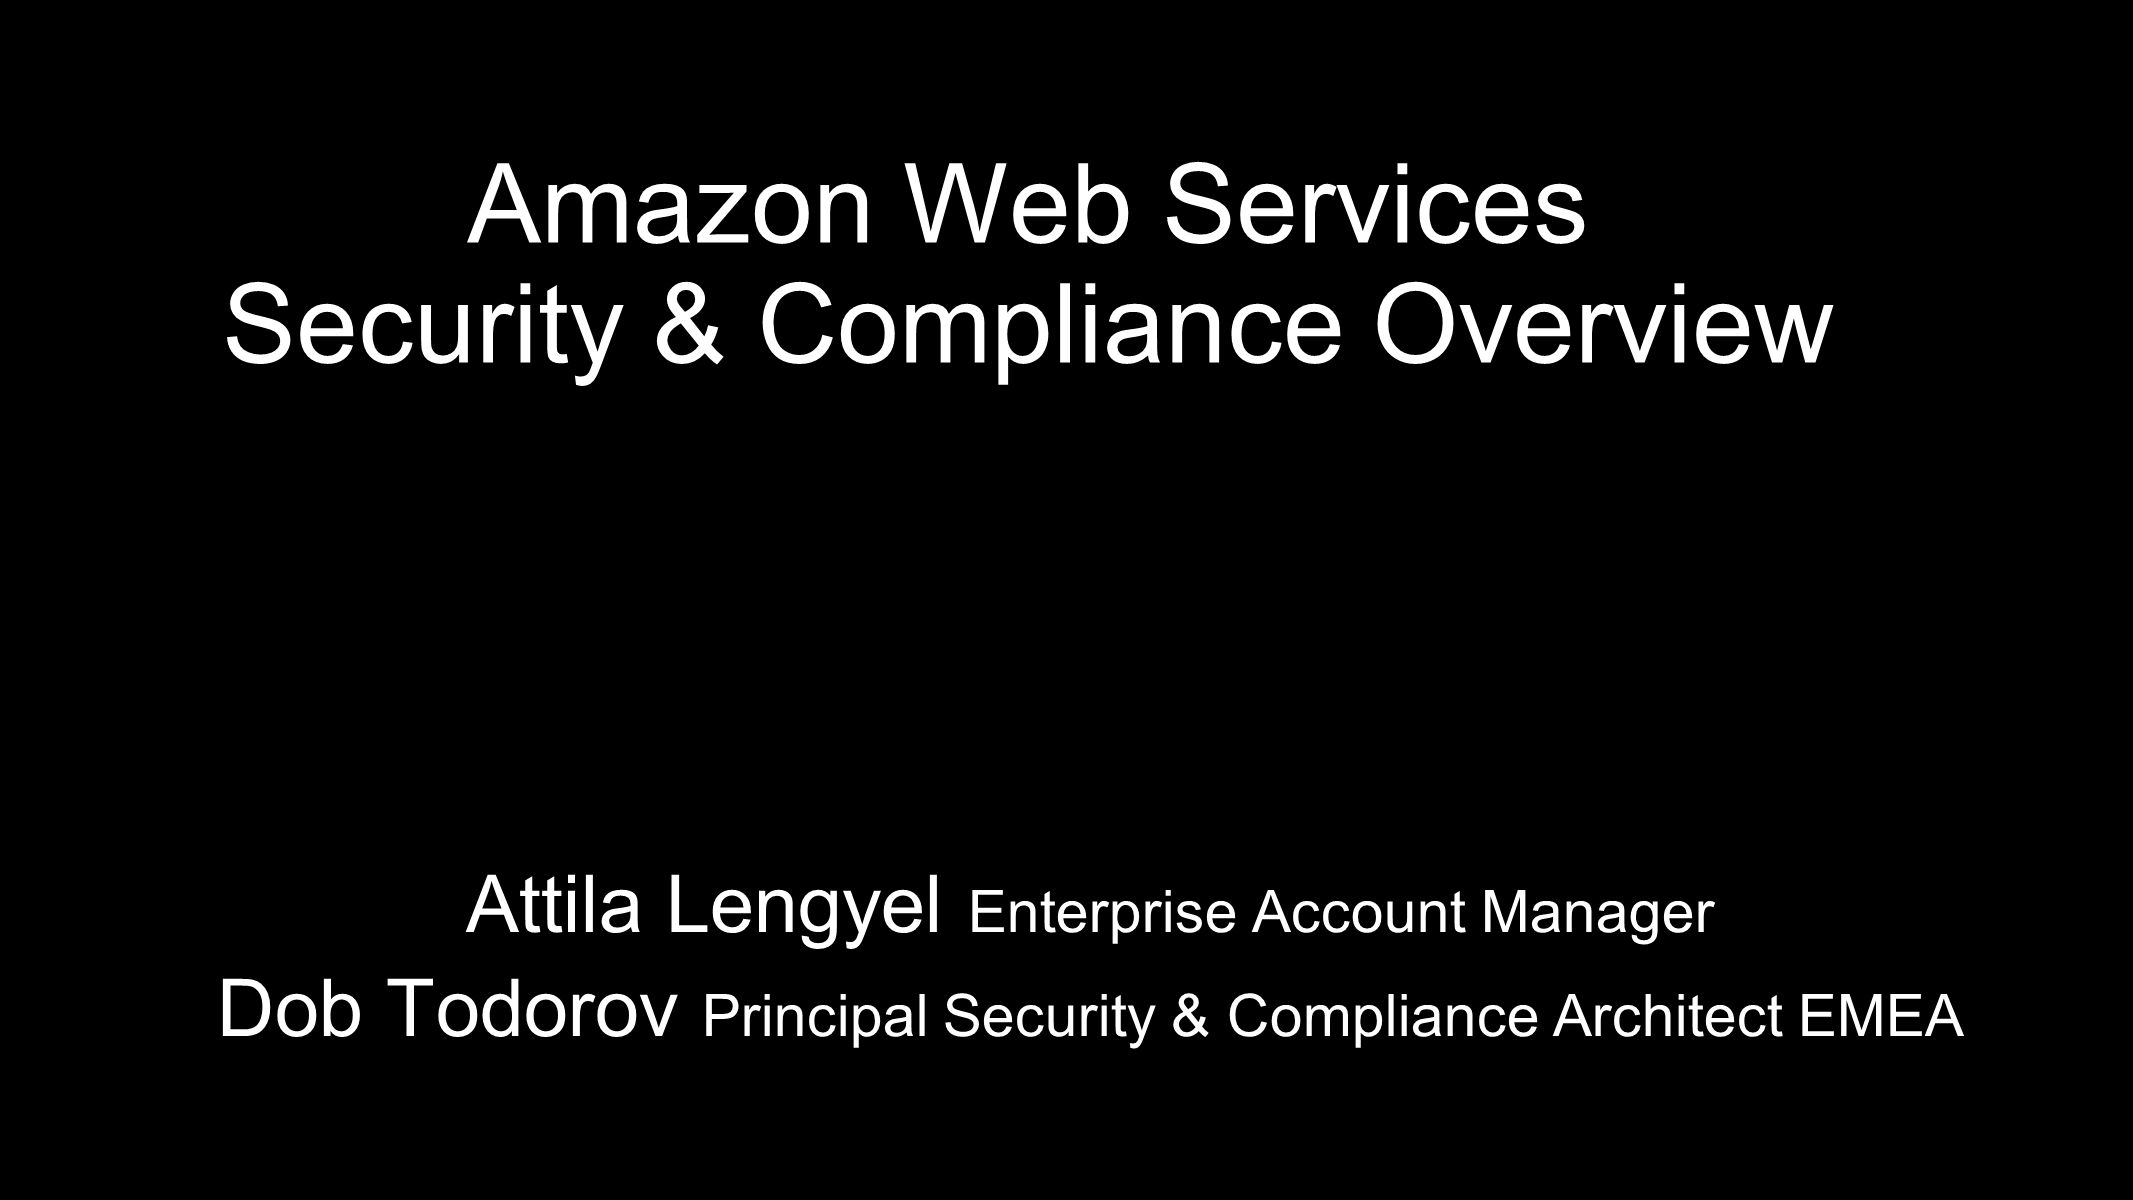 Amazon Web Services Security & Compliance Overview Attila Lengyel Enterprise Account Manager Dob Todorov Principal Security & Compliance Architect EME